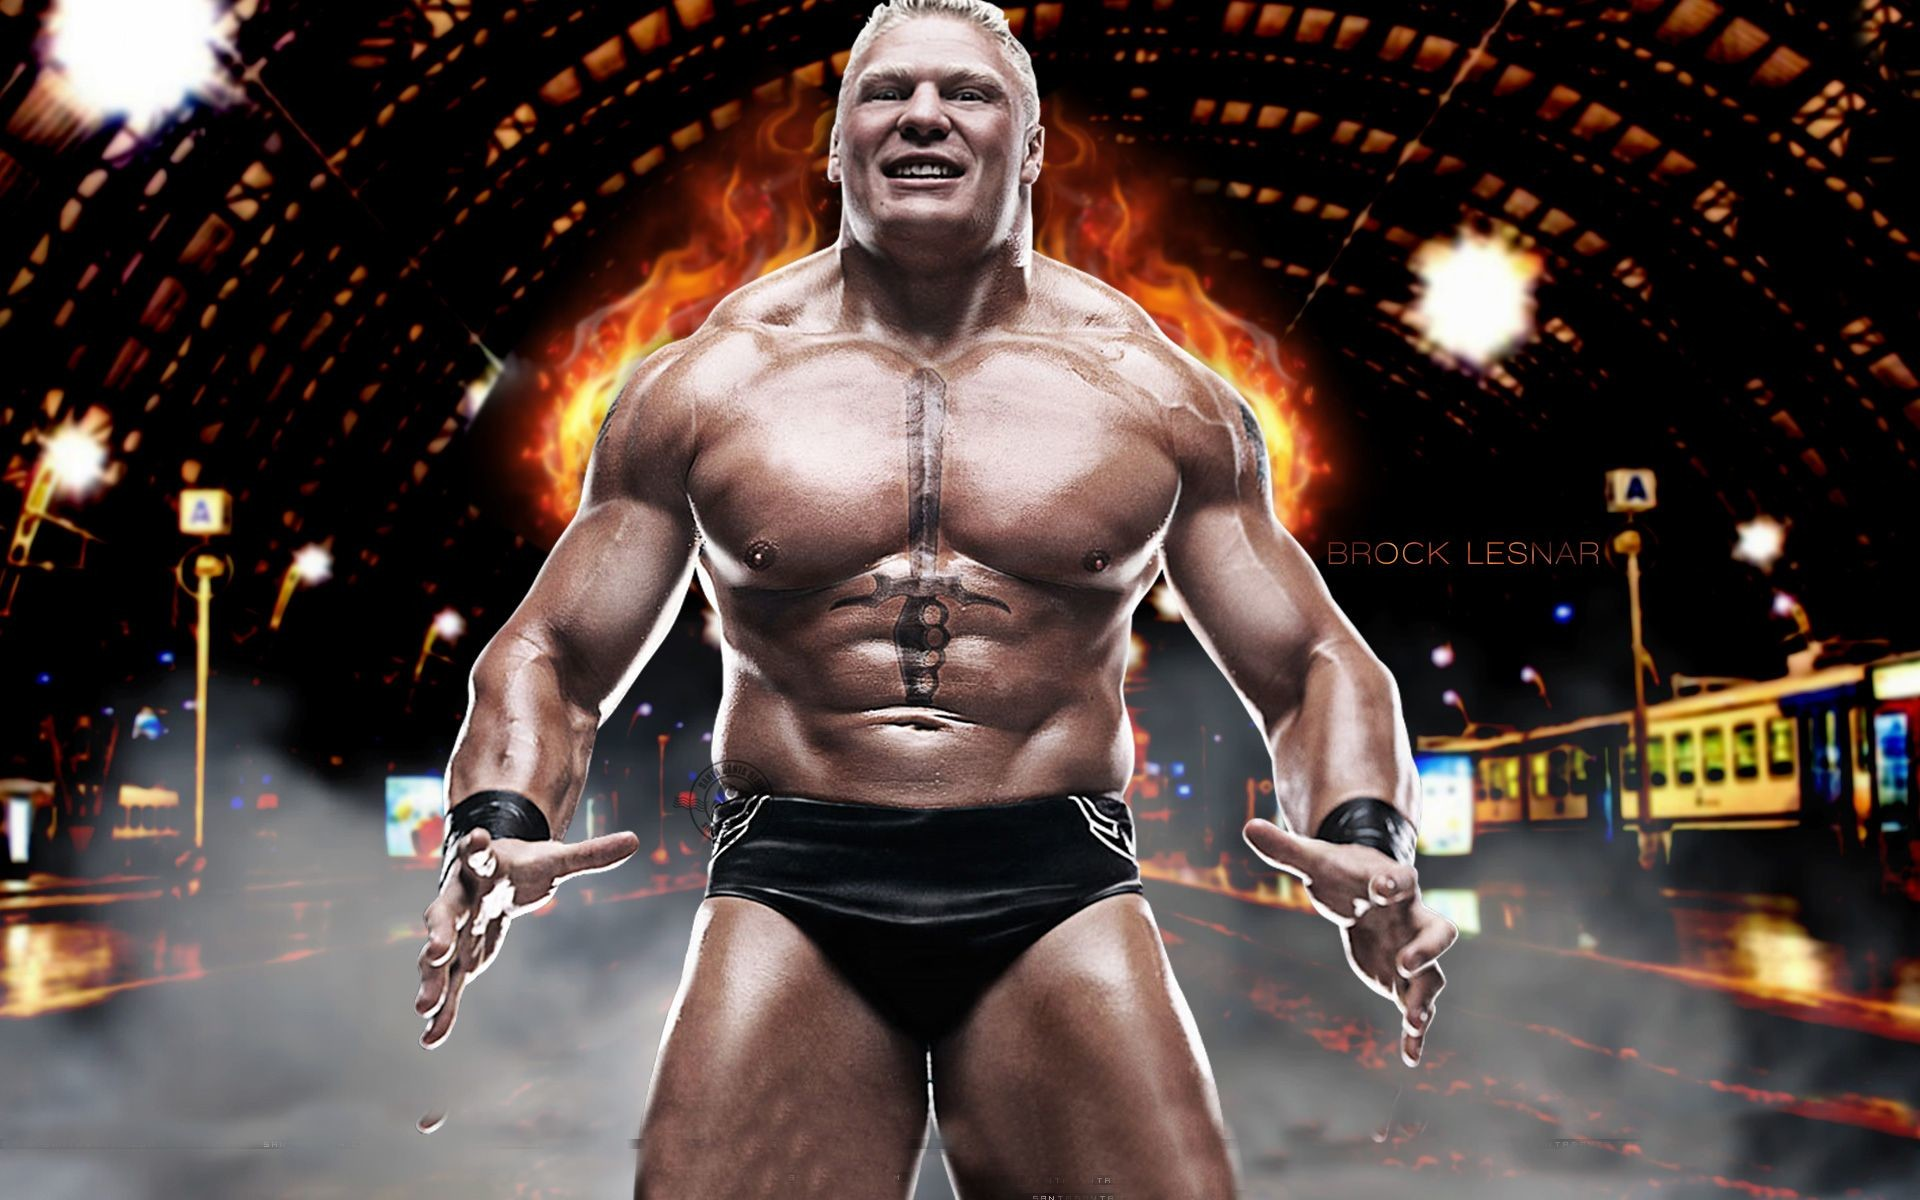 1920x1200 brock-lesnar-hd-background-7